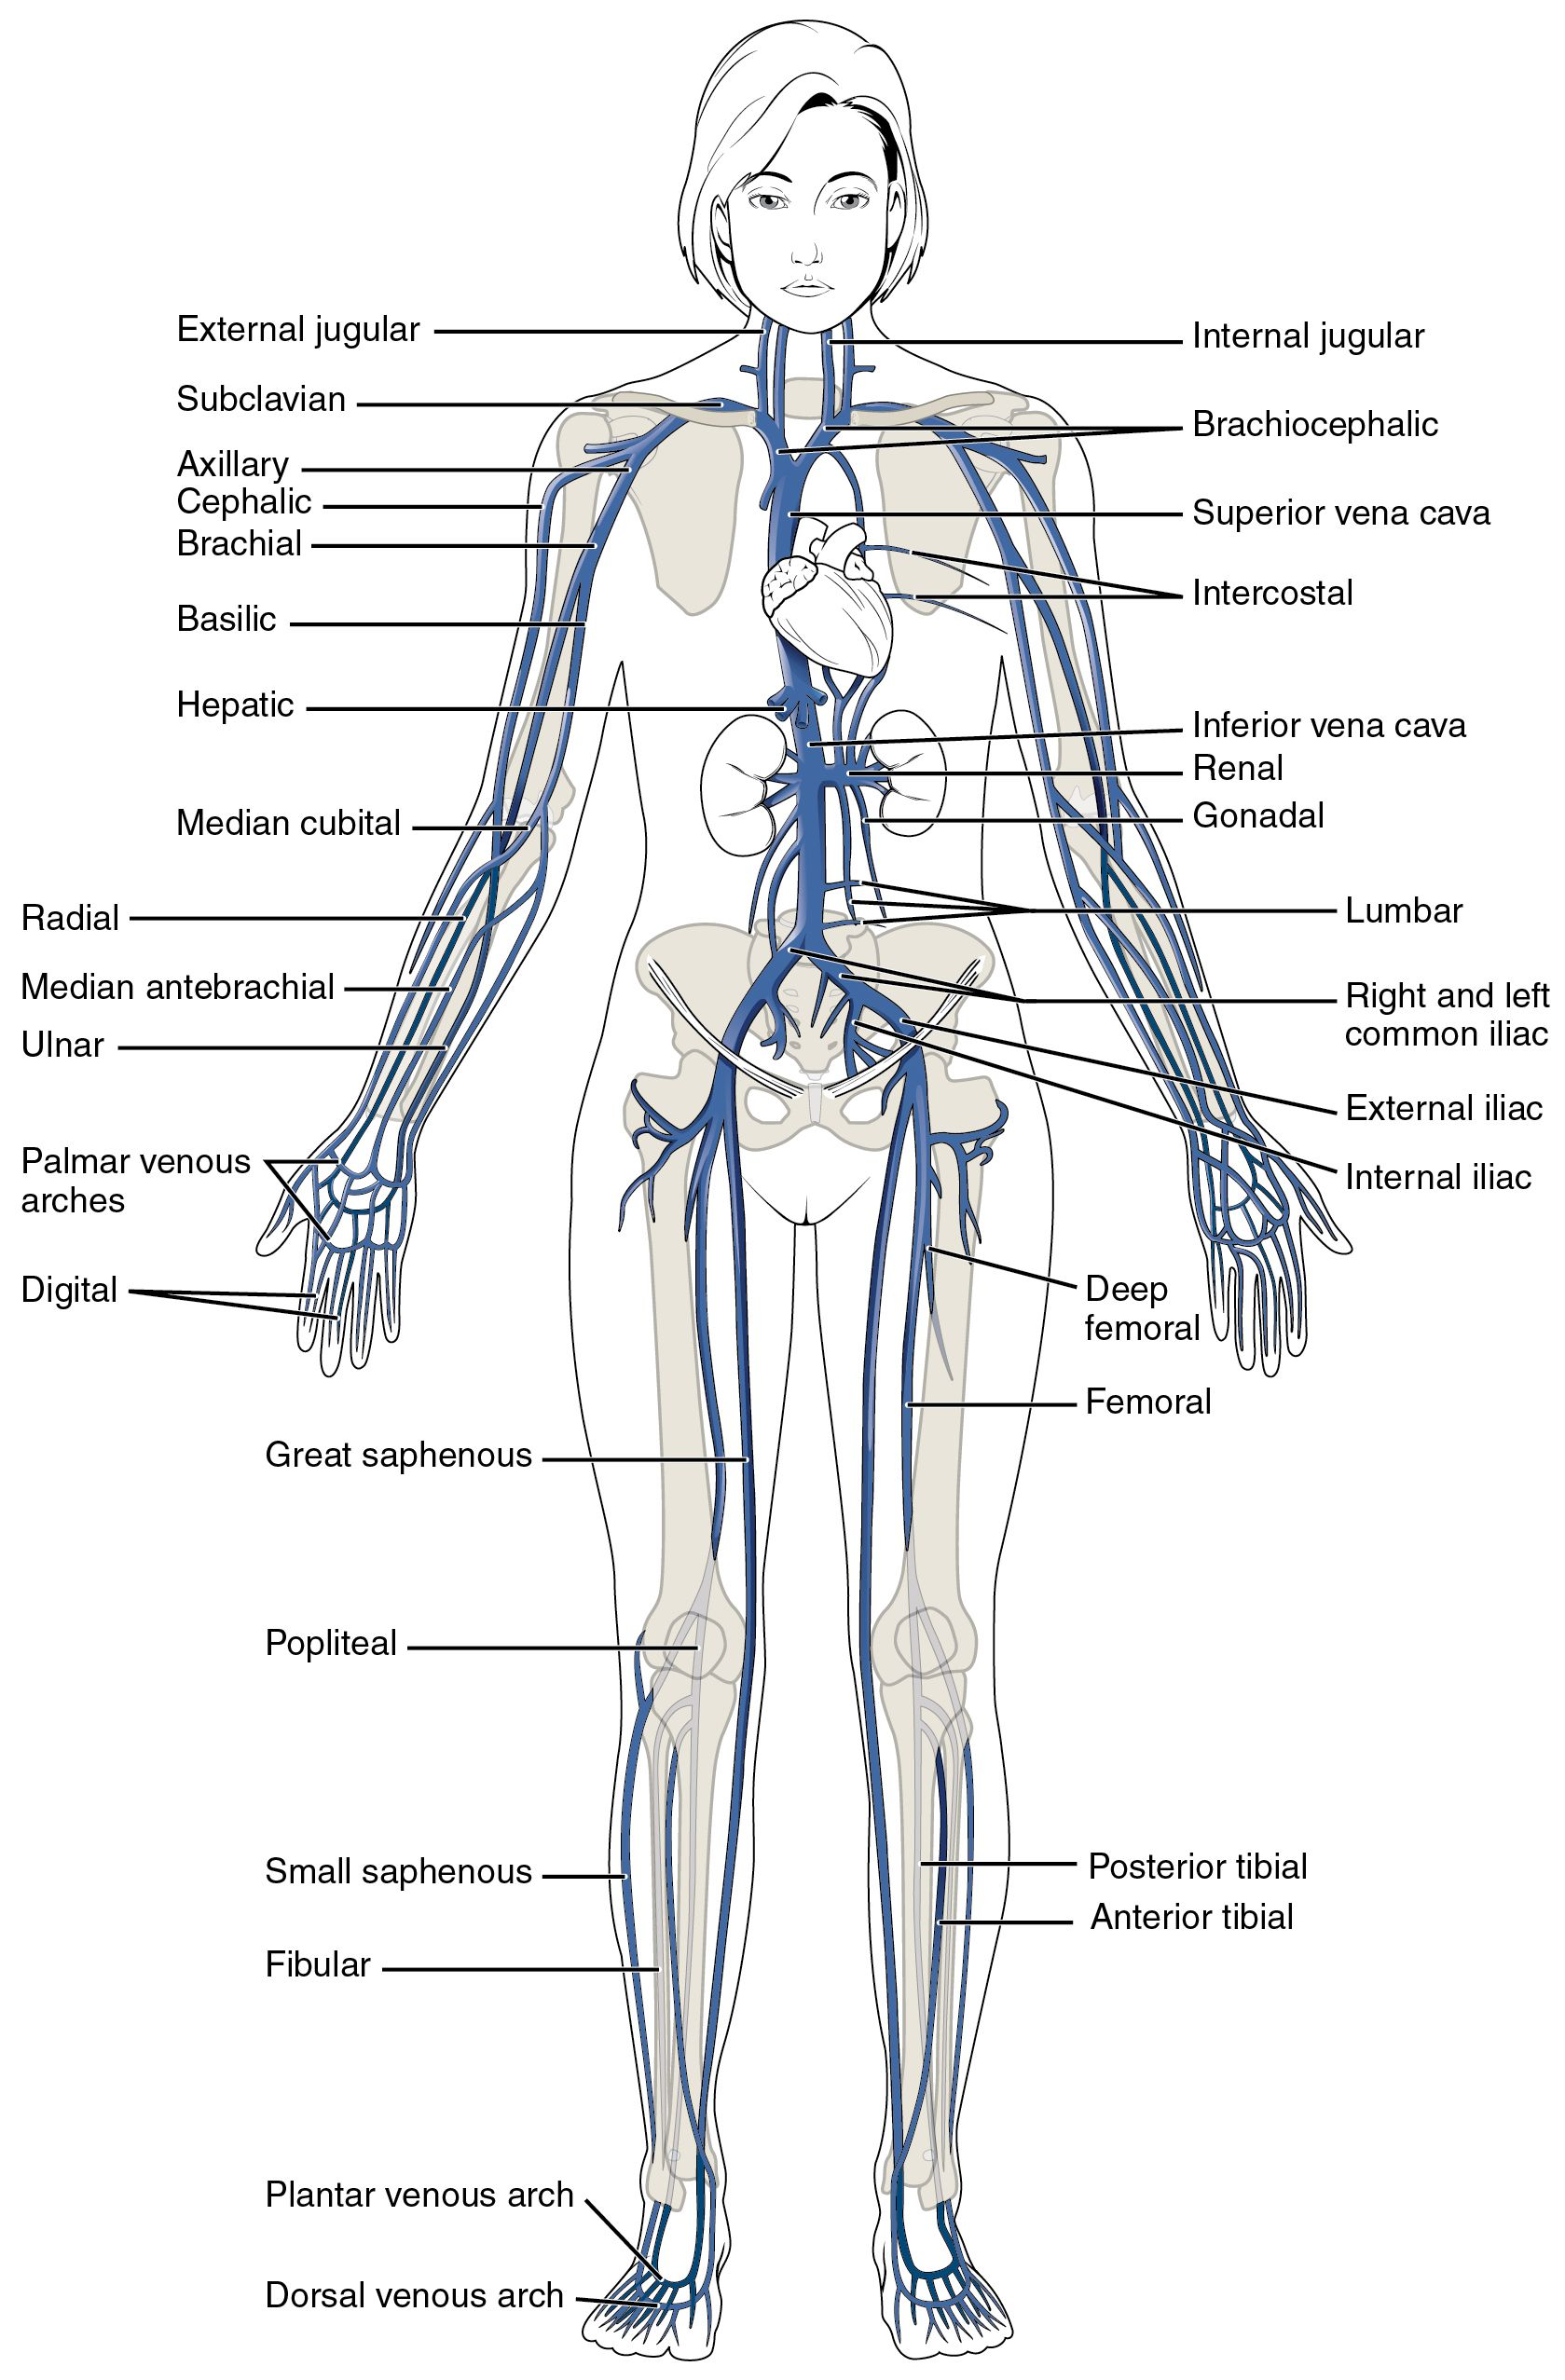 This Diagram Shows The Major Veins In The Human Body Venas